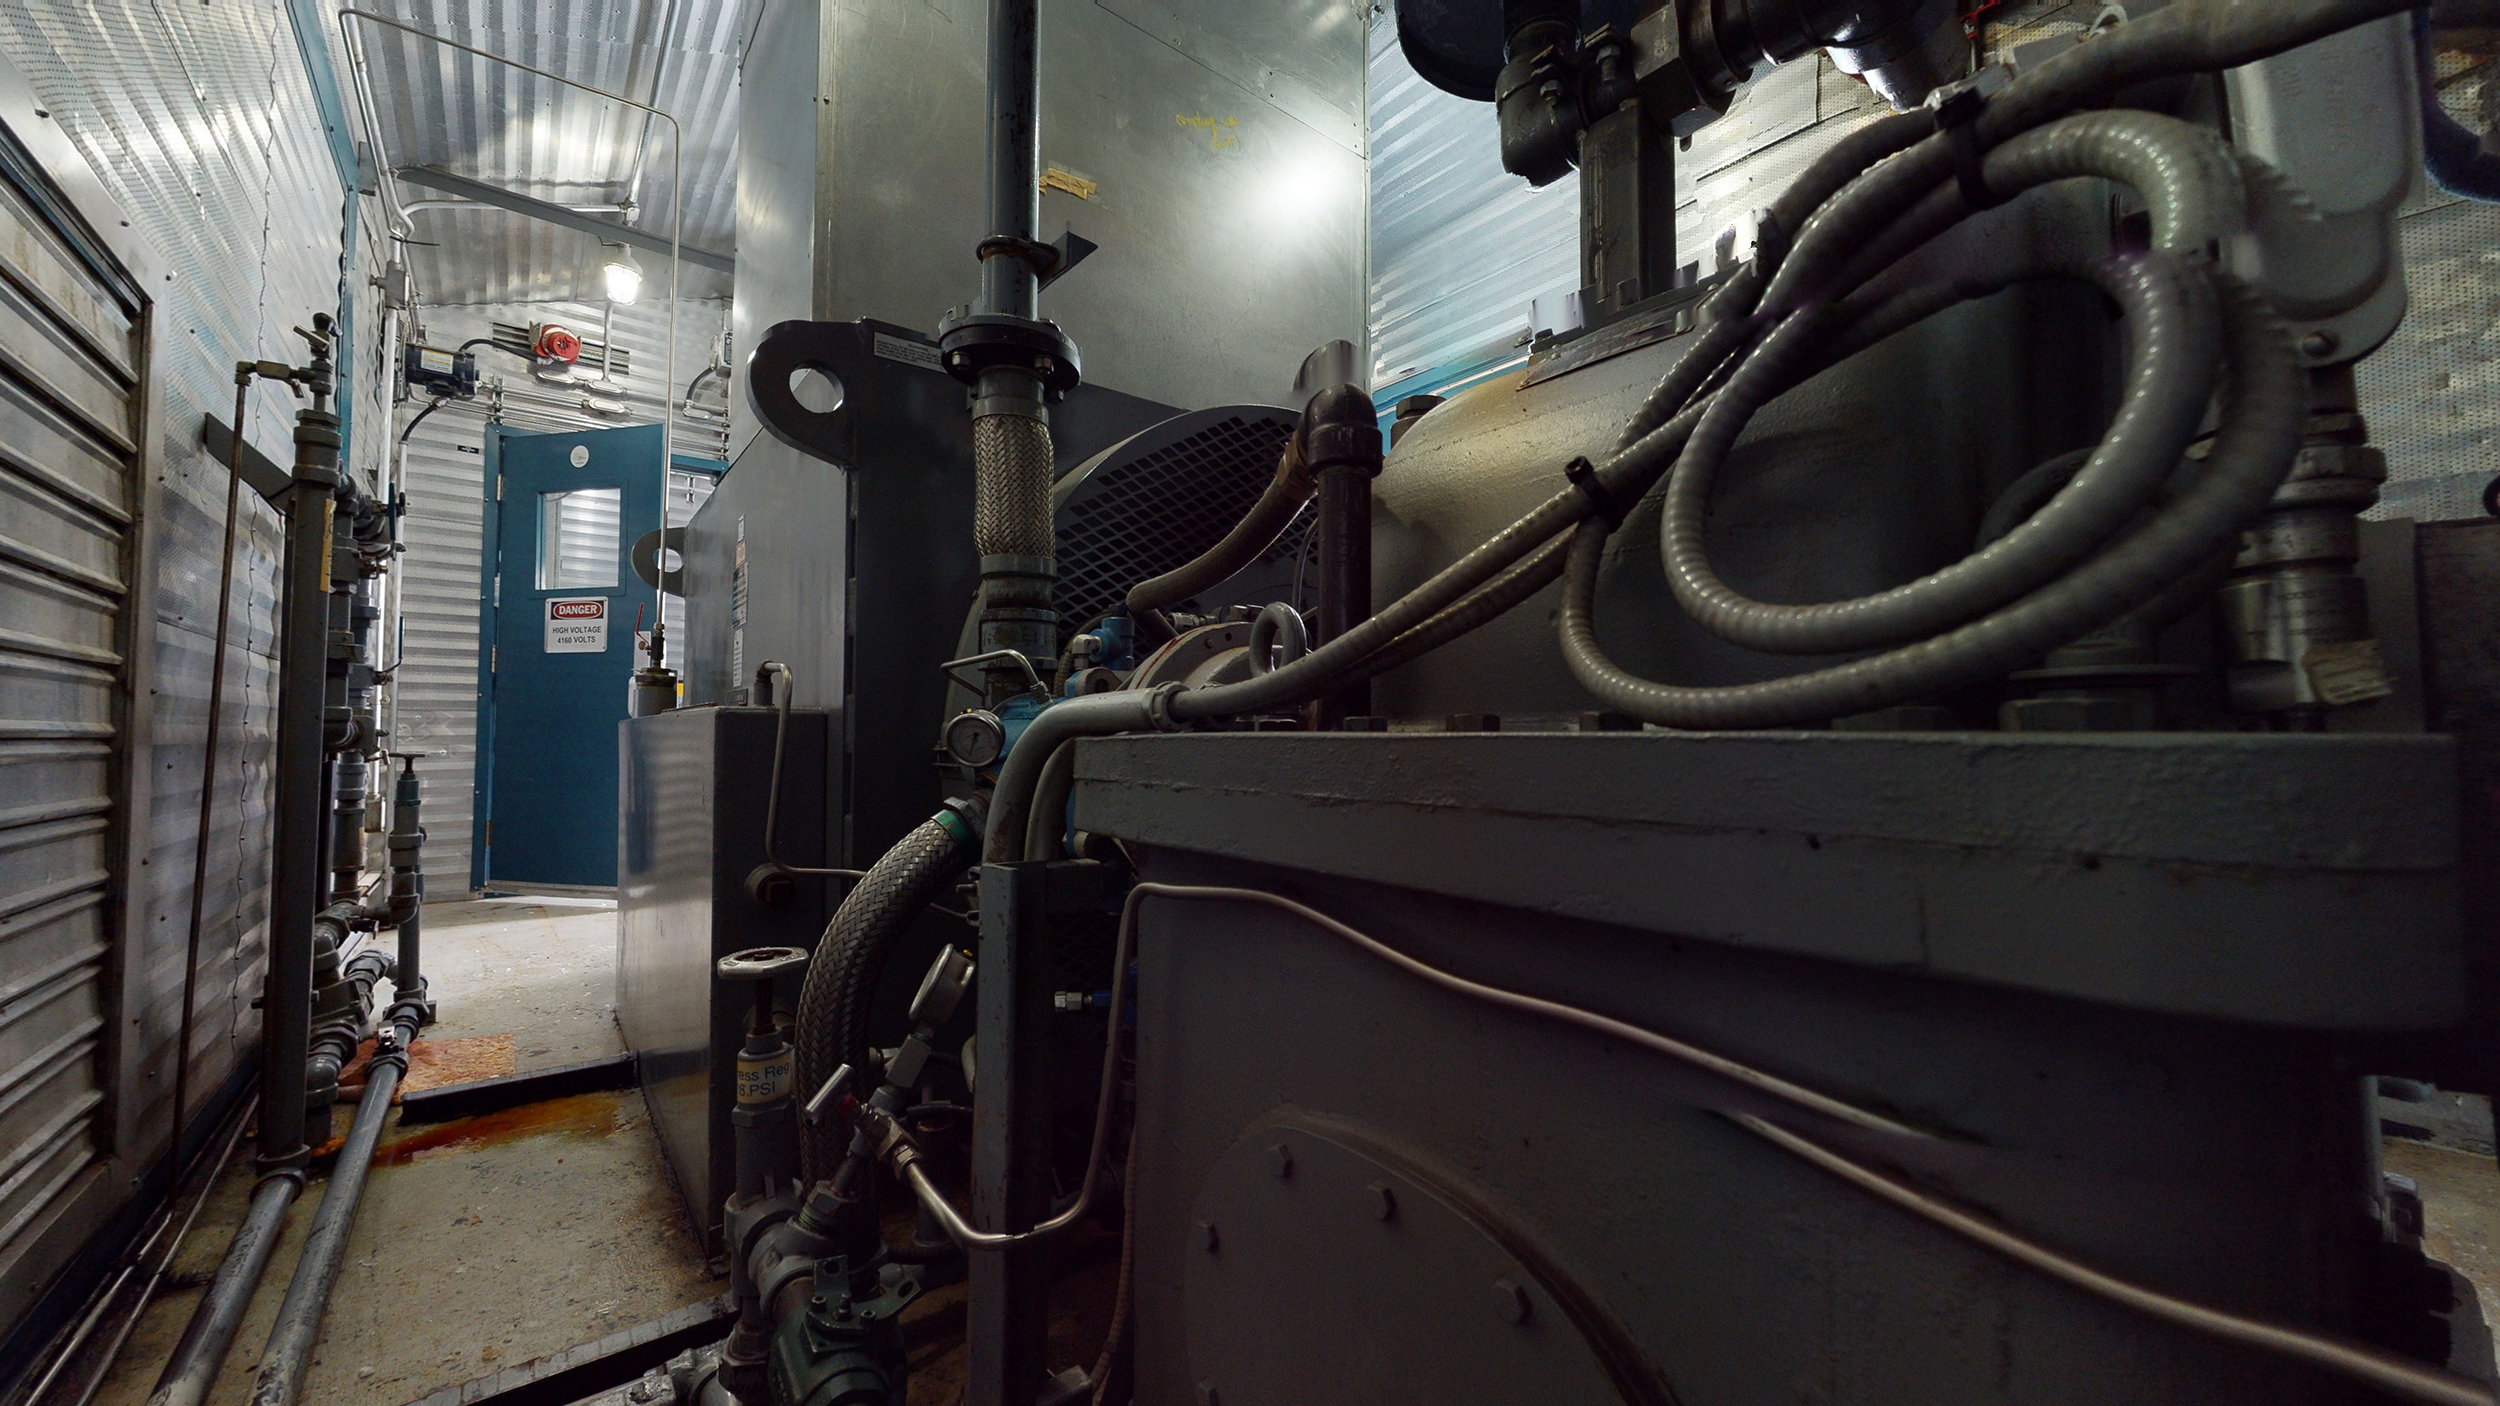 Interior 4 - gearbox & generator end - Used 2500 kW / 2 MW Allison Natural Gas Turbine Generator Package for sale in Alberta